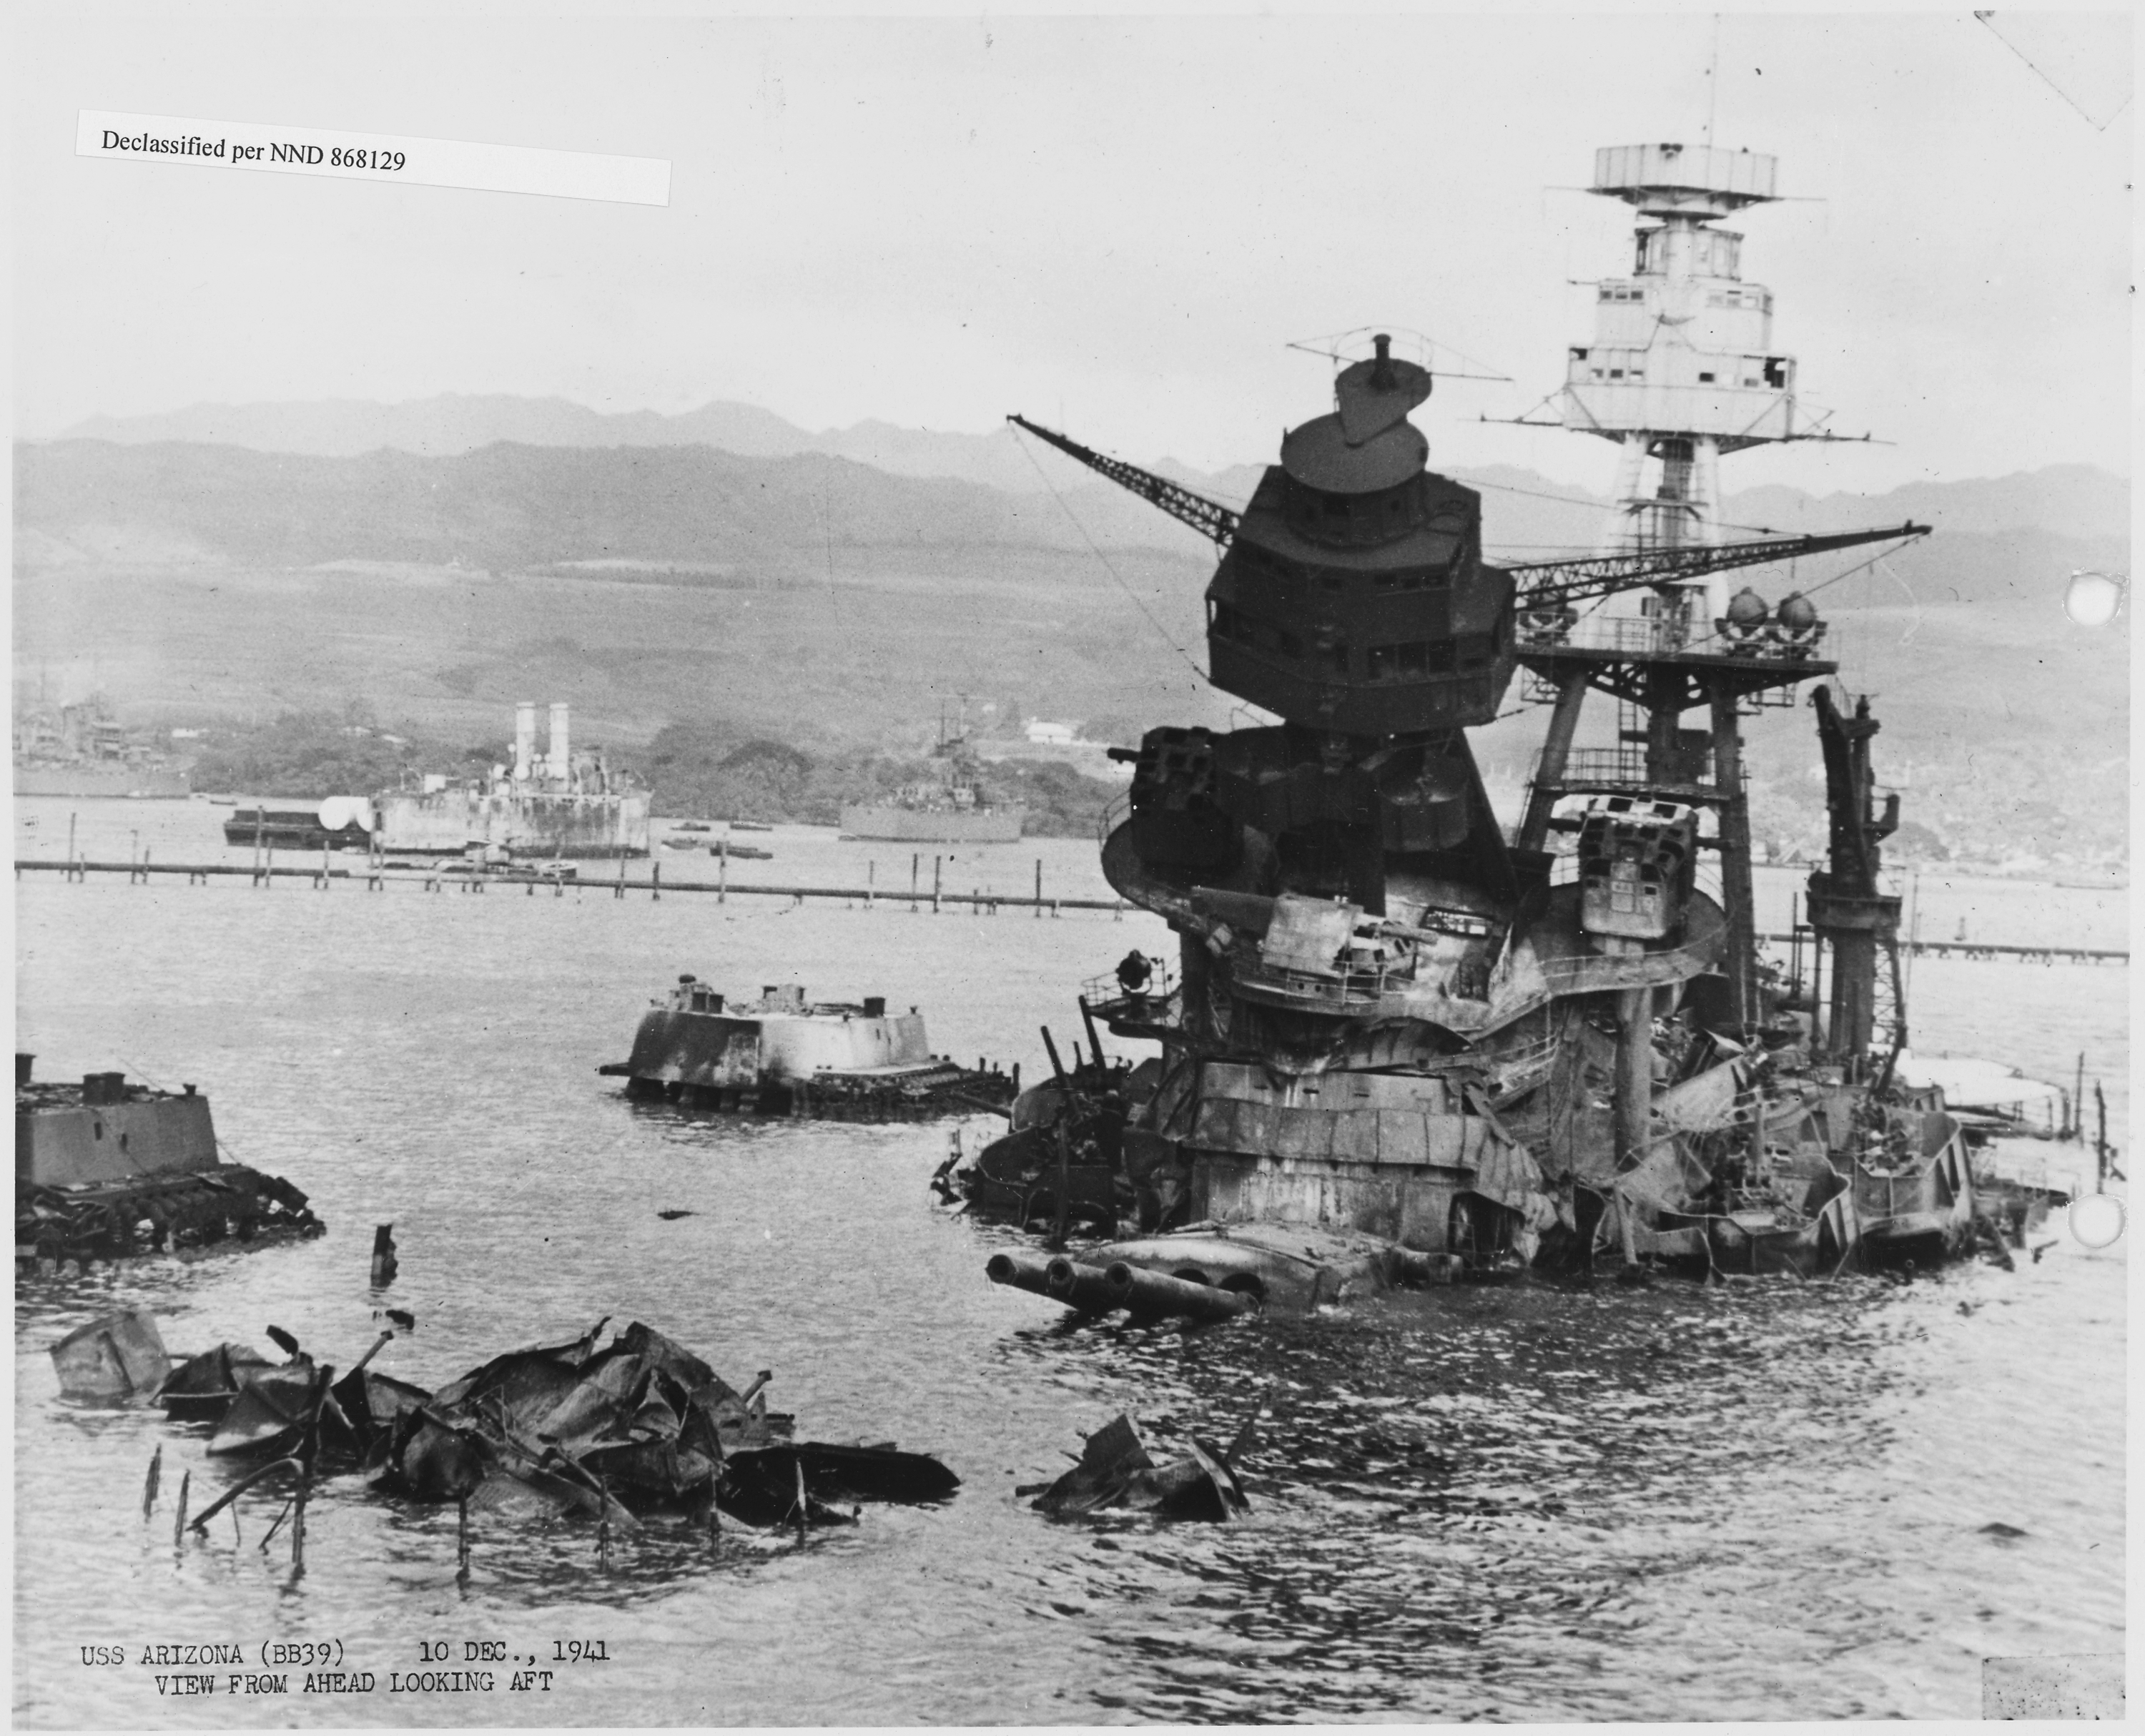 a history of the surprise attack on pearl harbor Pearl harbor oahu - the attack: facts and information the attack book your pearl harbor passport tickets and tours with us and experience the history of pearl harbor poor communications between washington and hawaii helped the japanese achieve the surprise attack on pearl harbor.